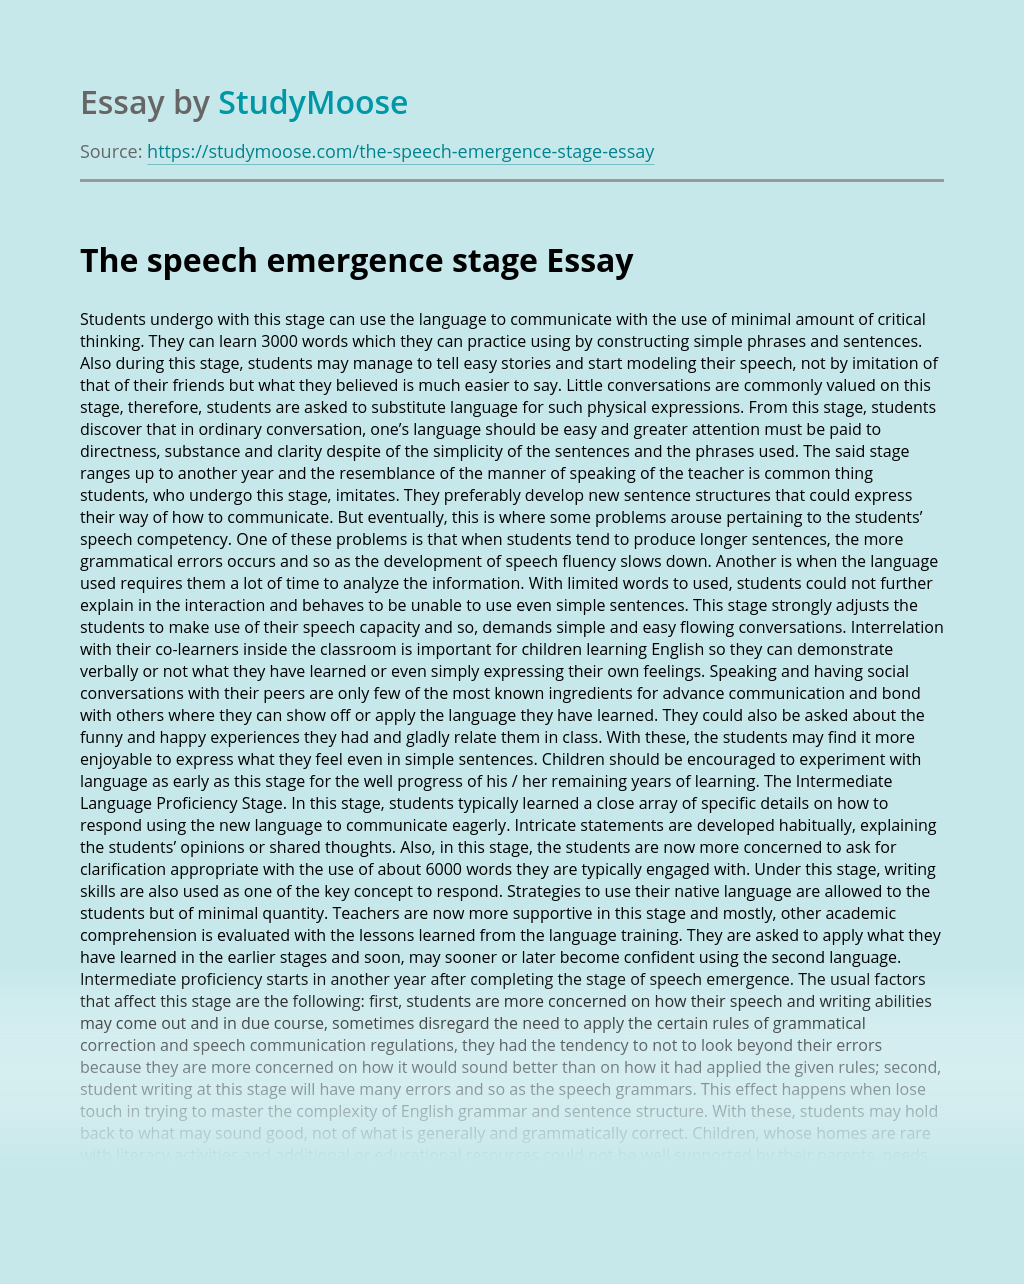 The speech emergence stage